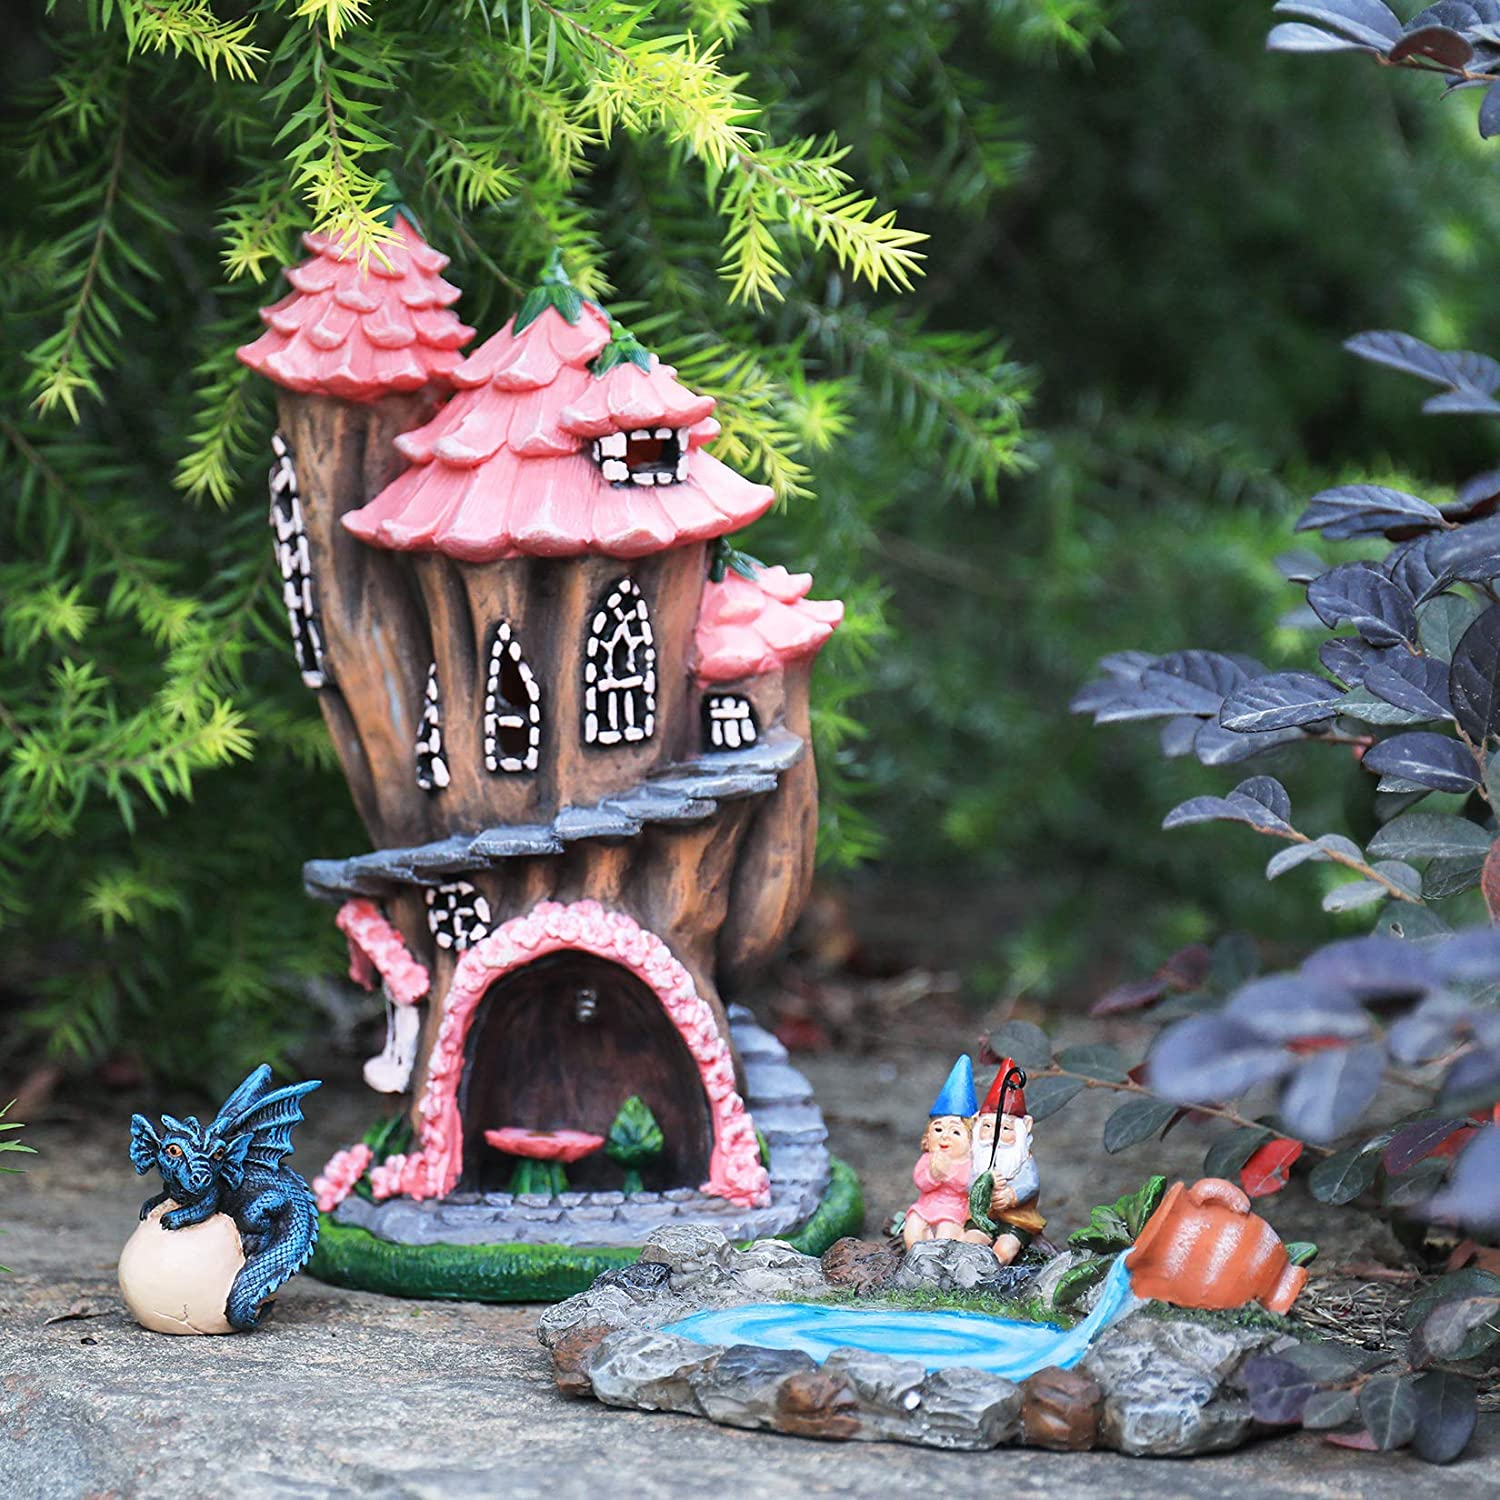 LA JOLIE MUSE Fairy Garden Gnome Accessories Kit - Hand Painted Miniature Solar Powered Fairy House Dragon Figurine Set of 4 pcs, Indoor & Outdoor Christmas Ornaments Gifts for Girls Boys Adults